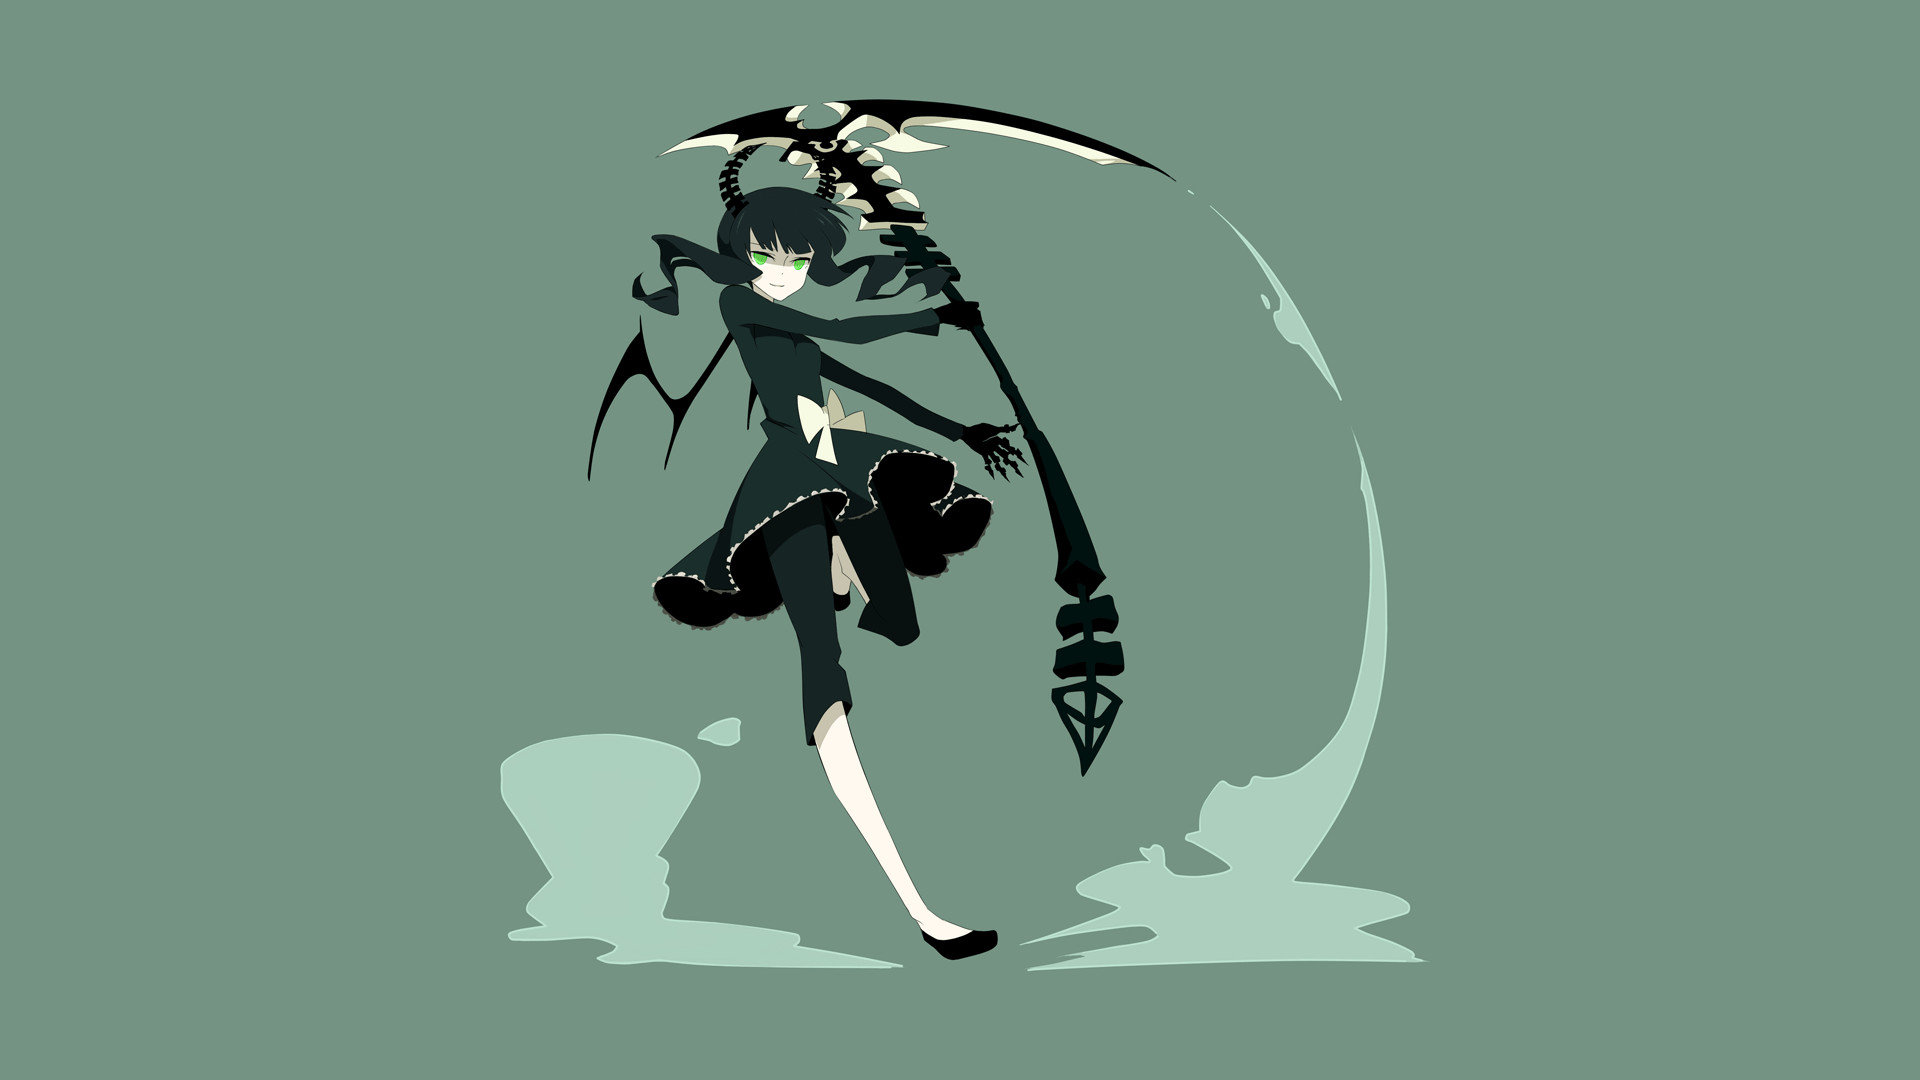 Awesome Dead Master (Black Rock Shooter) free wallpaper ID:453920 for hd 1920x1080 PC